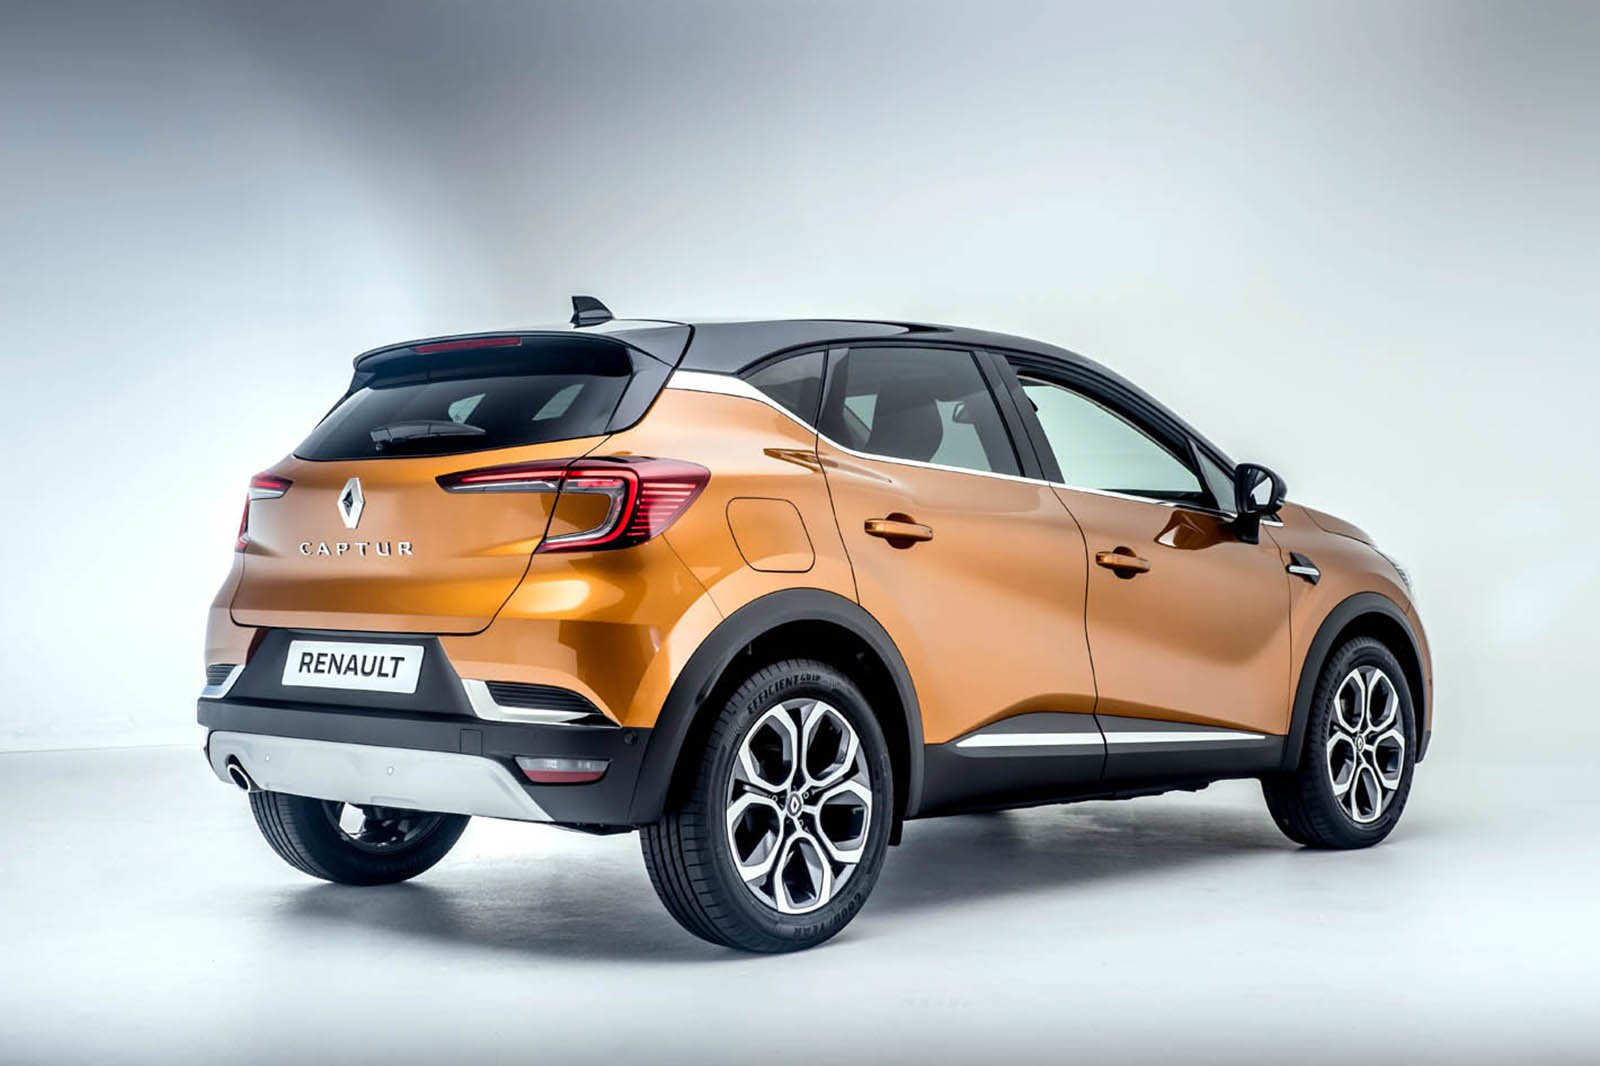 2020 Renault Captur Suv Price Specs And Release Date